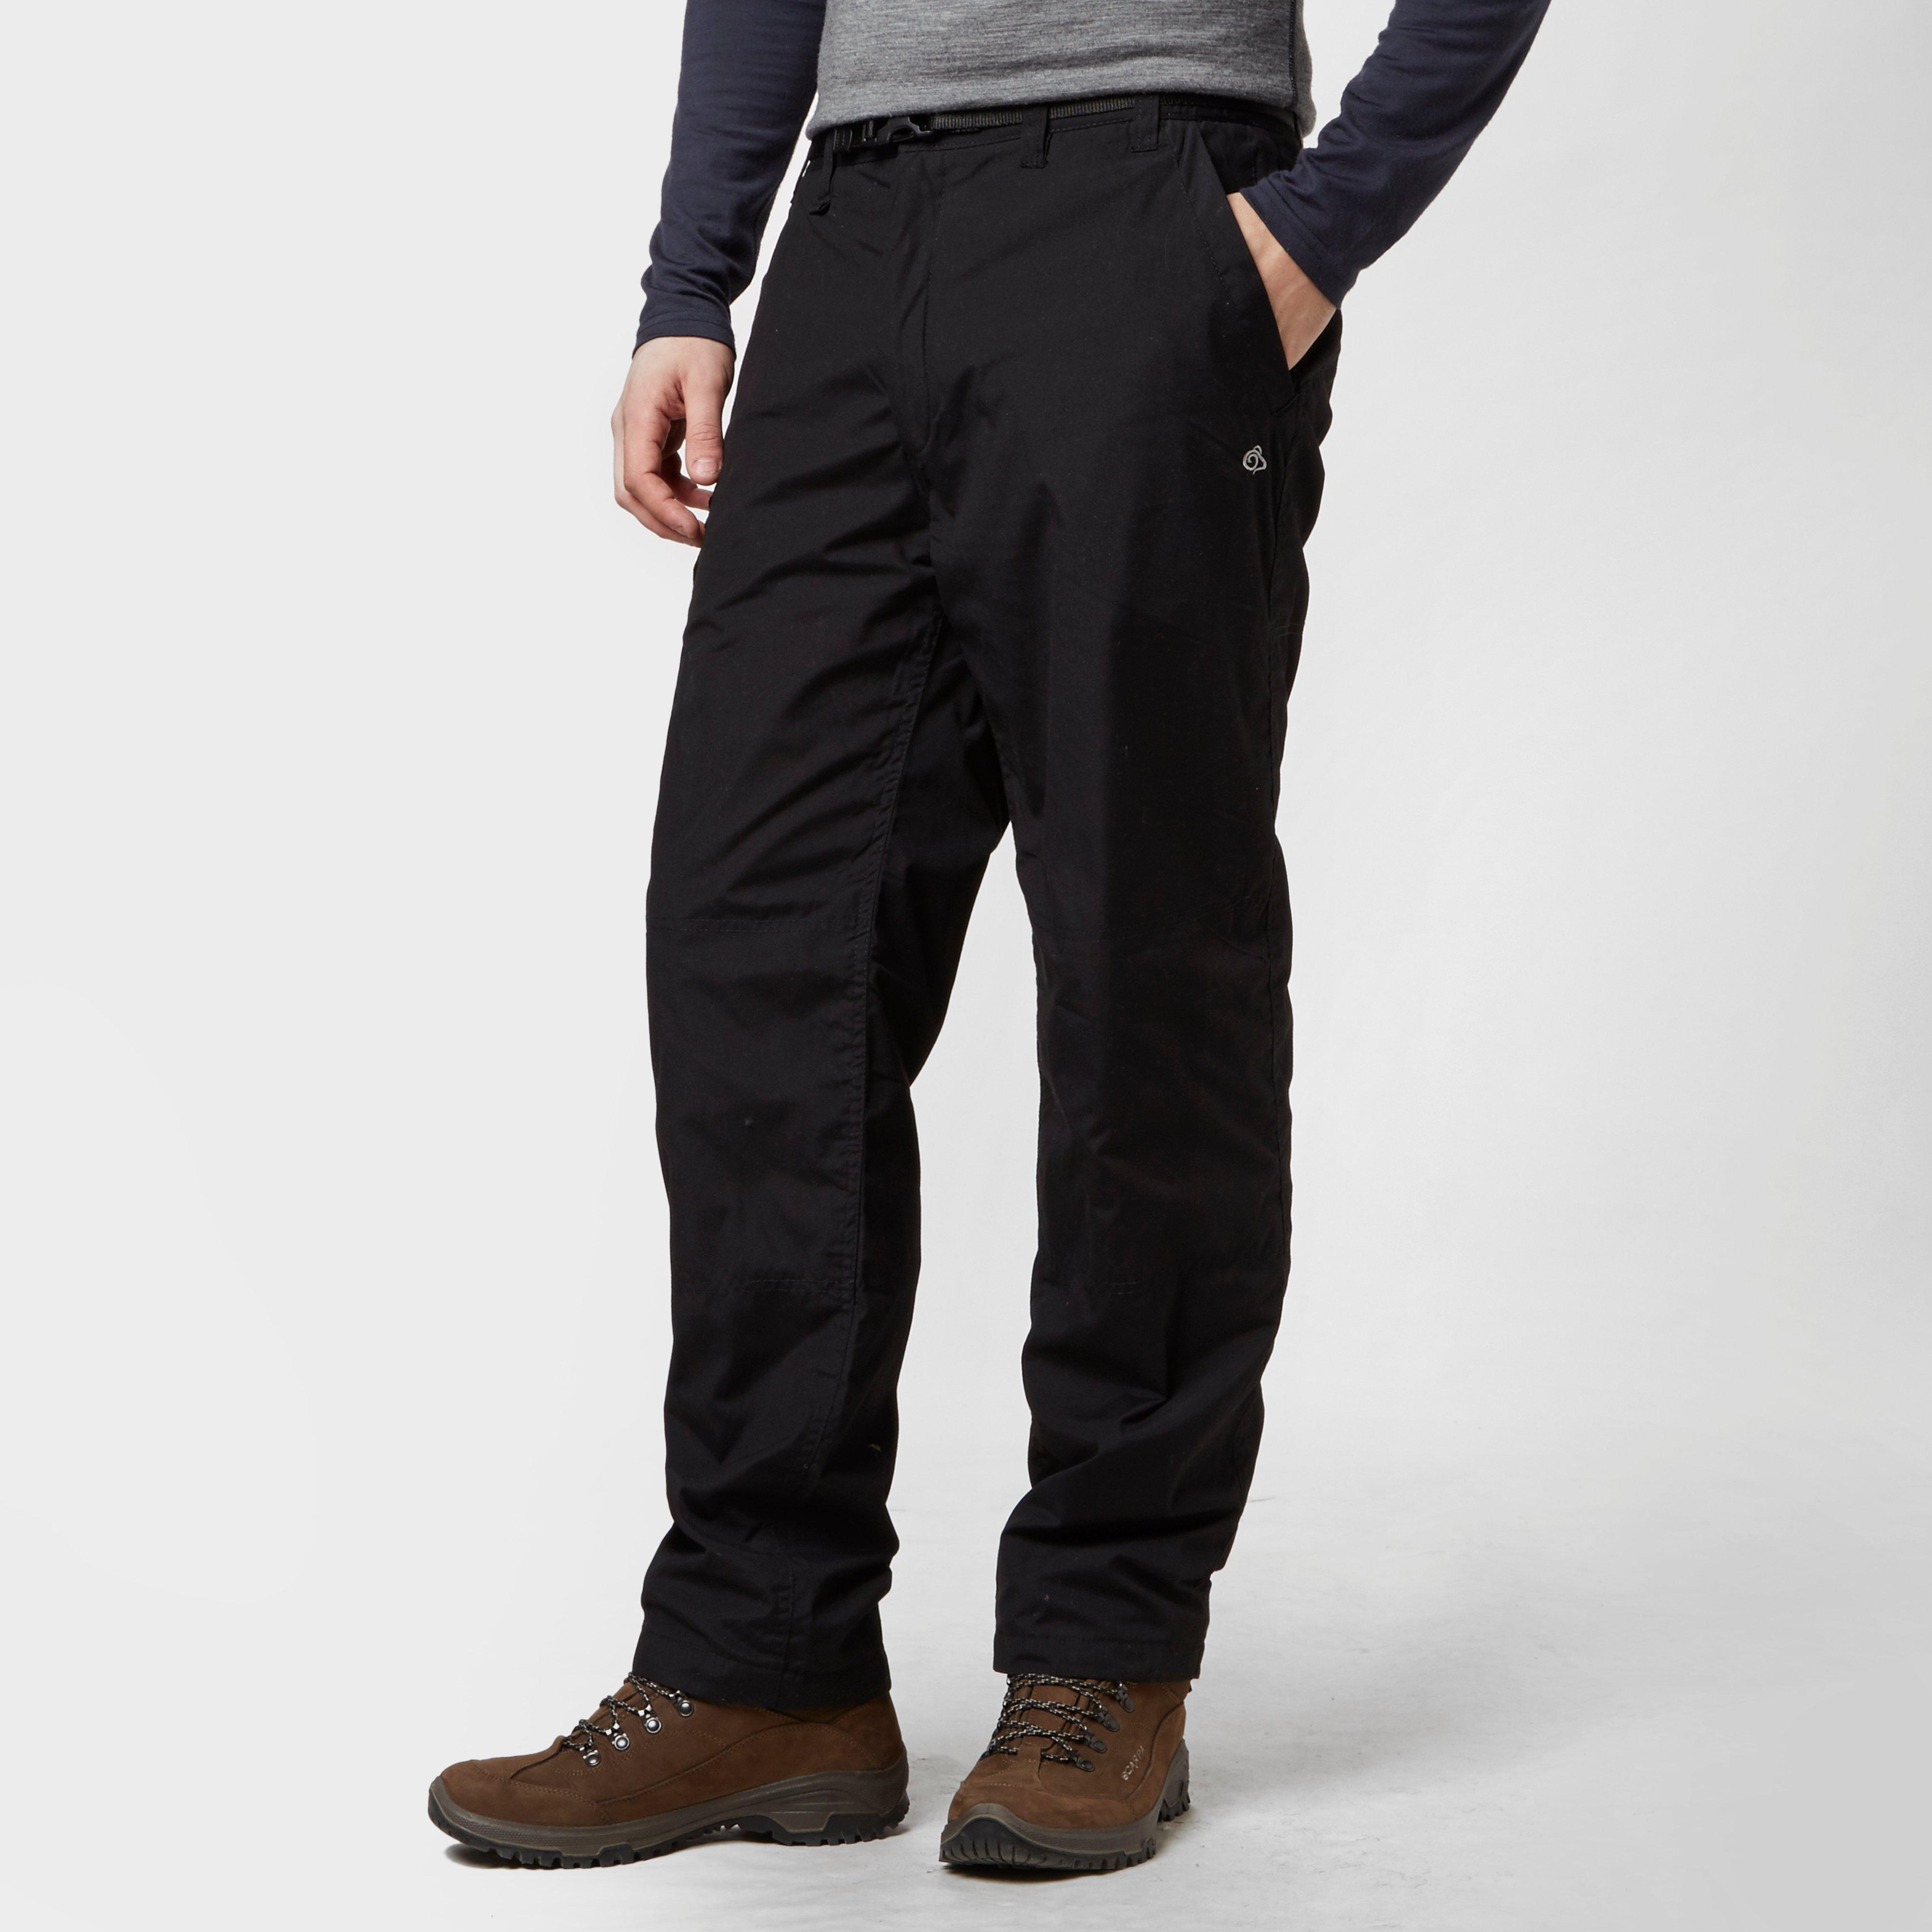 Craghoppers Mens Kiwi Lined Trousers Black